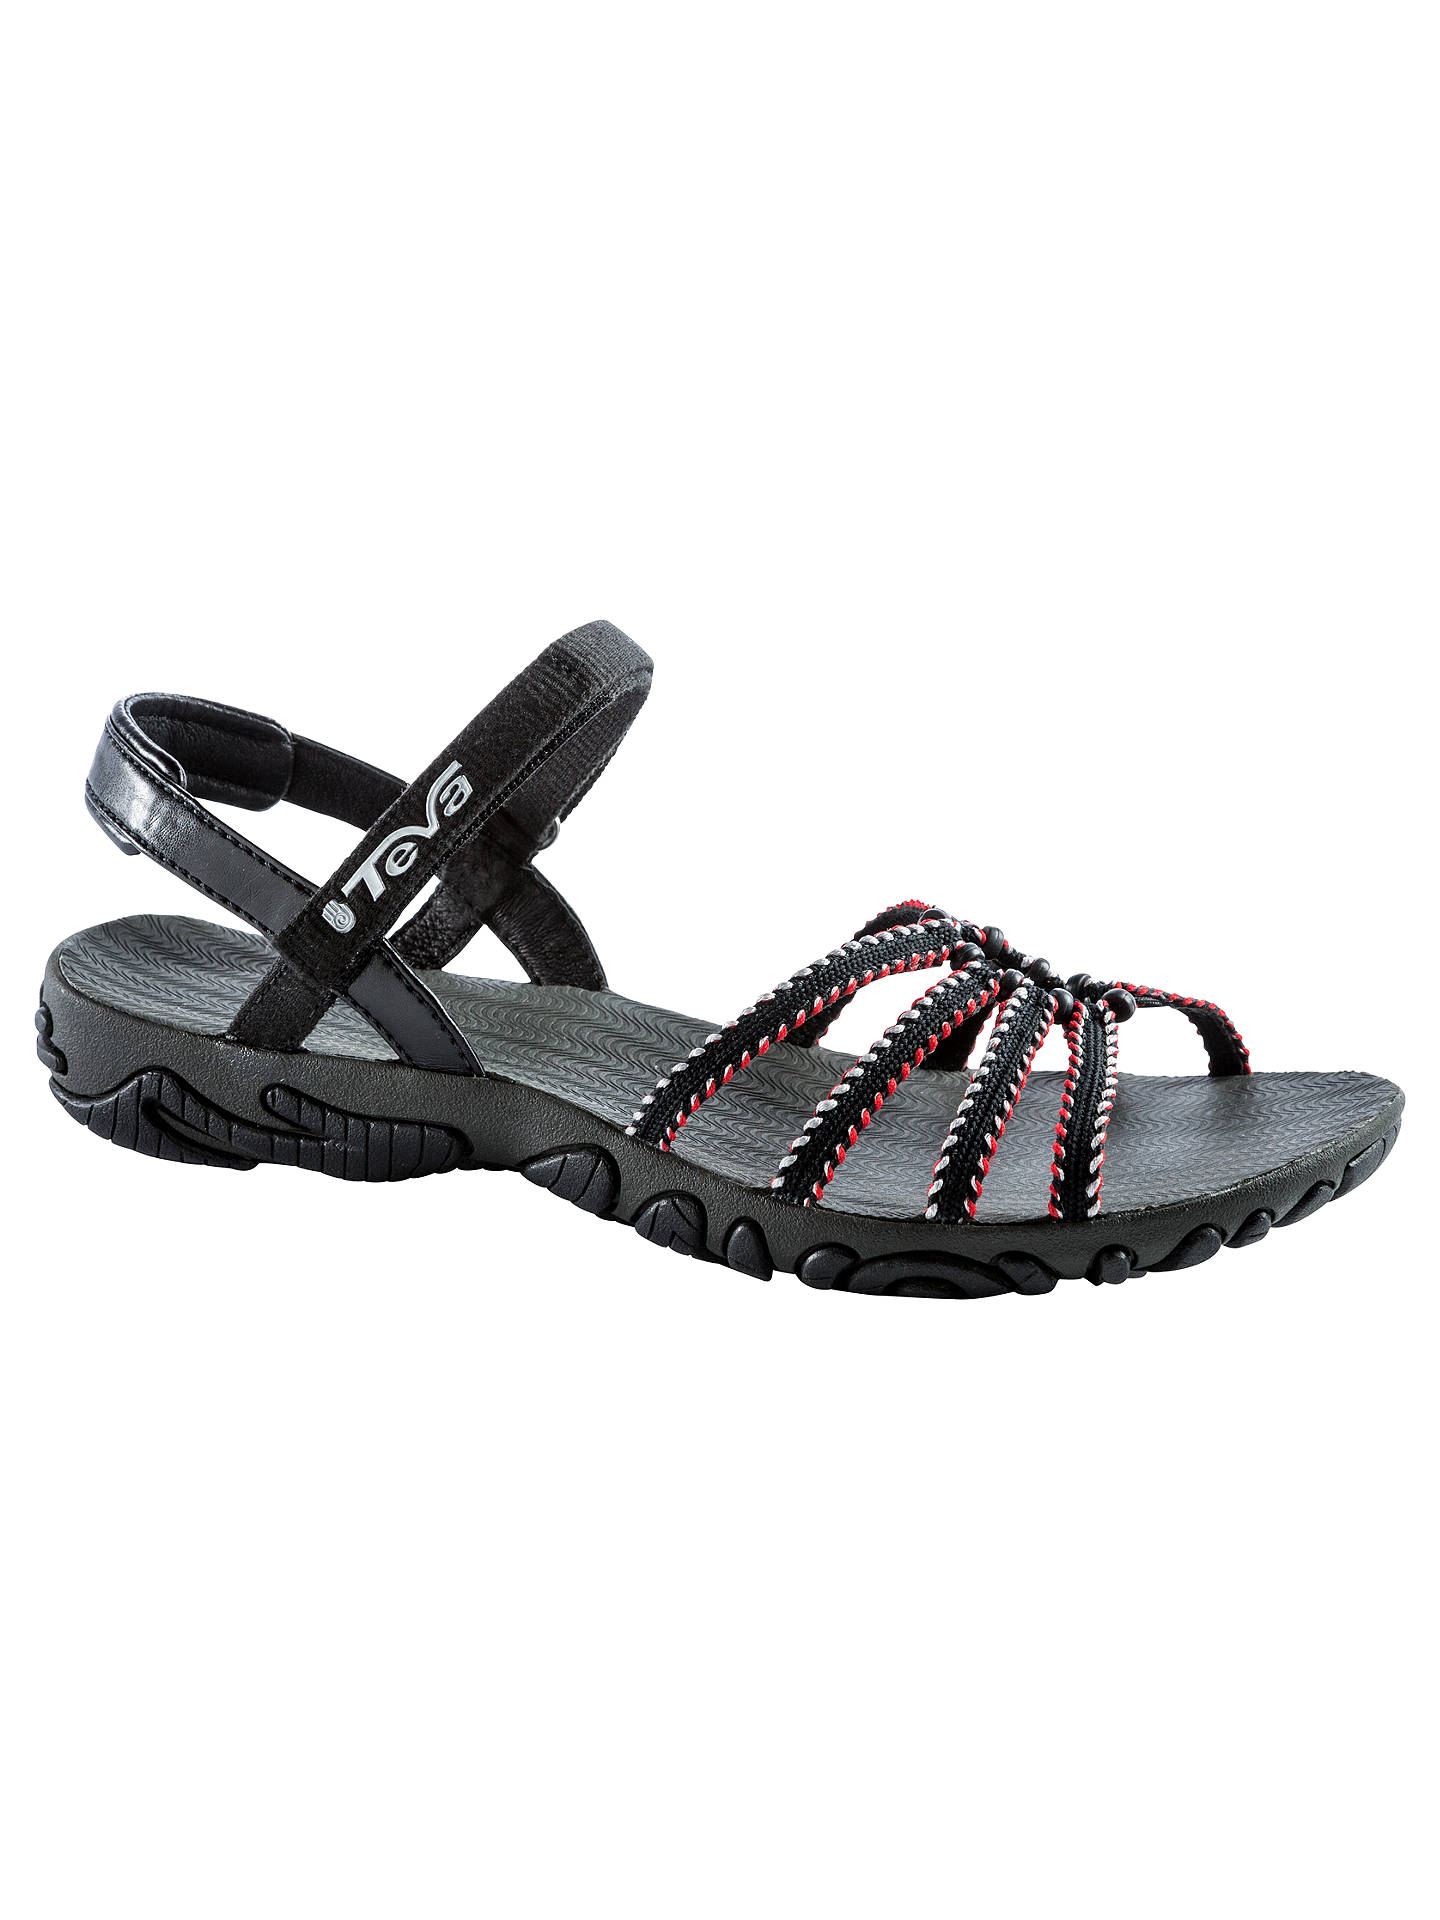 Teva Women's Sandals Partners Dream At Lewisamp; Kayenta Weave John fy76IYbvmg